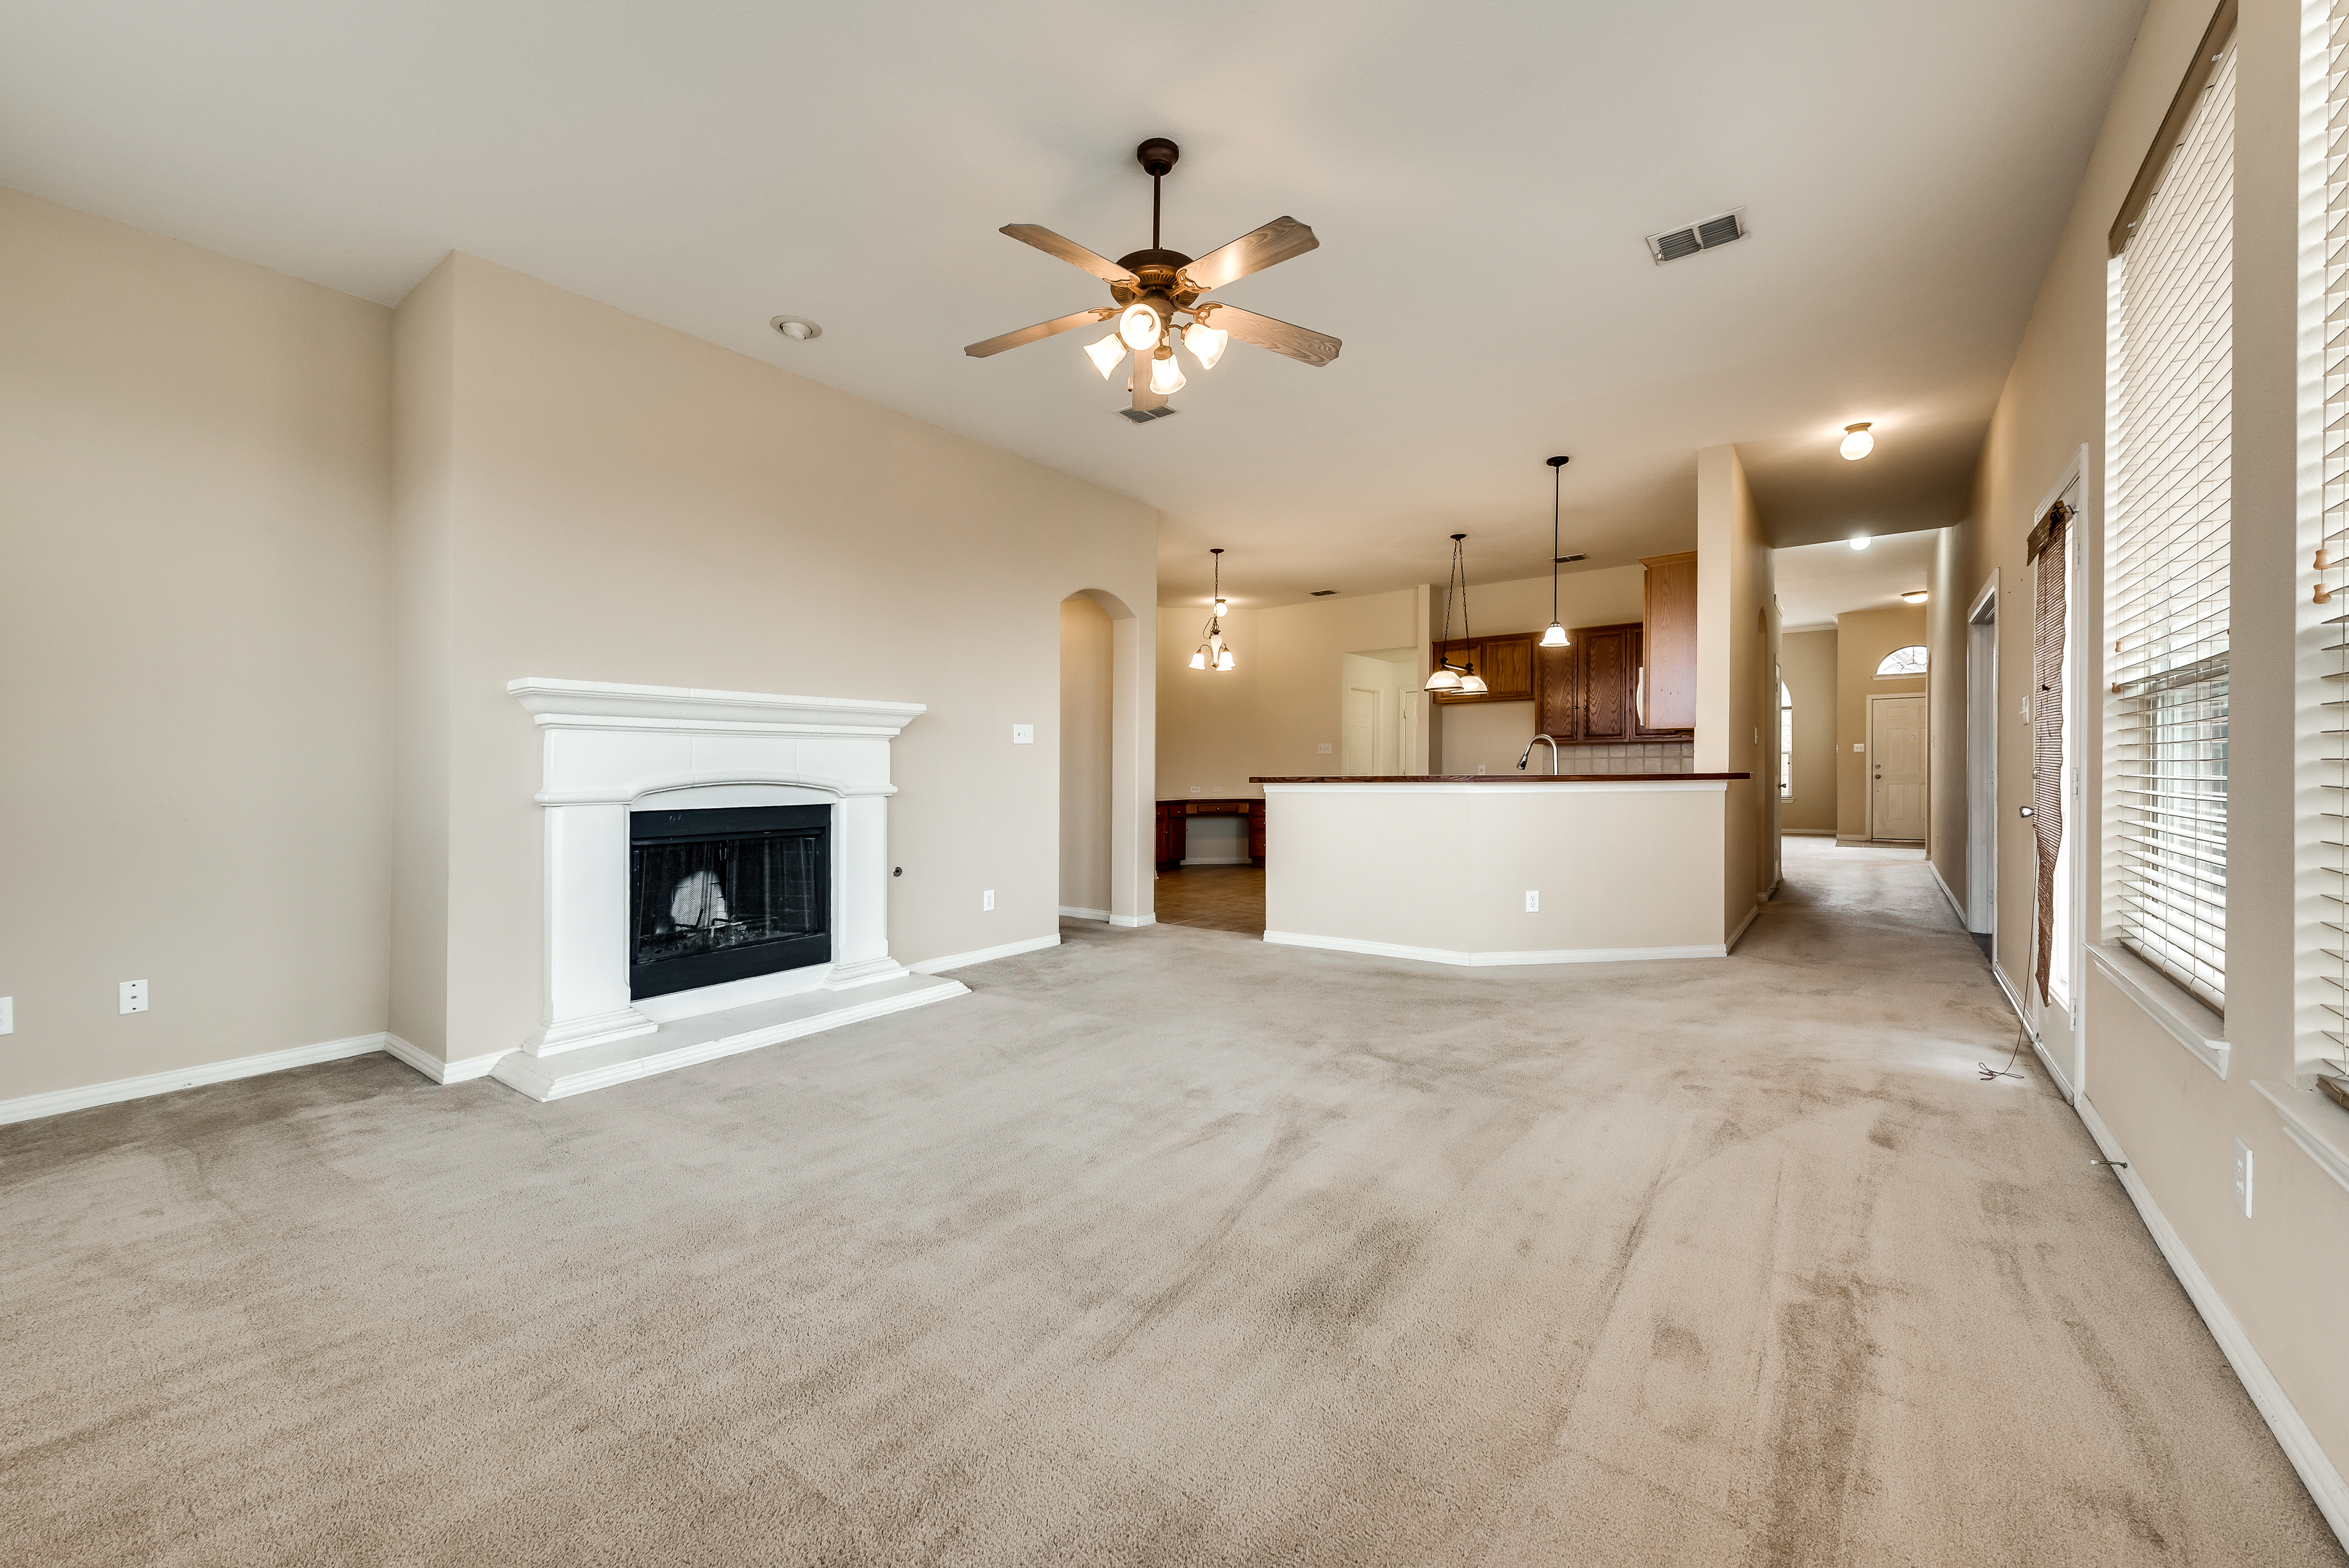 2929 B open floor plan.jpg